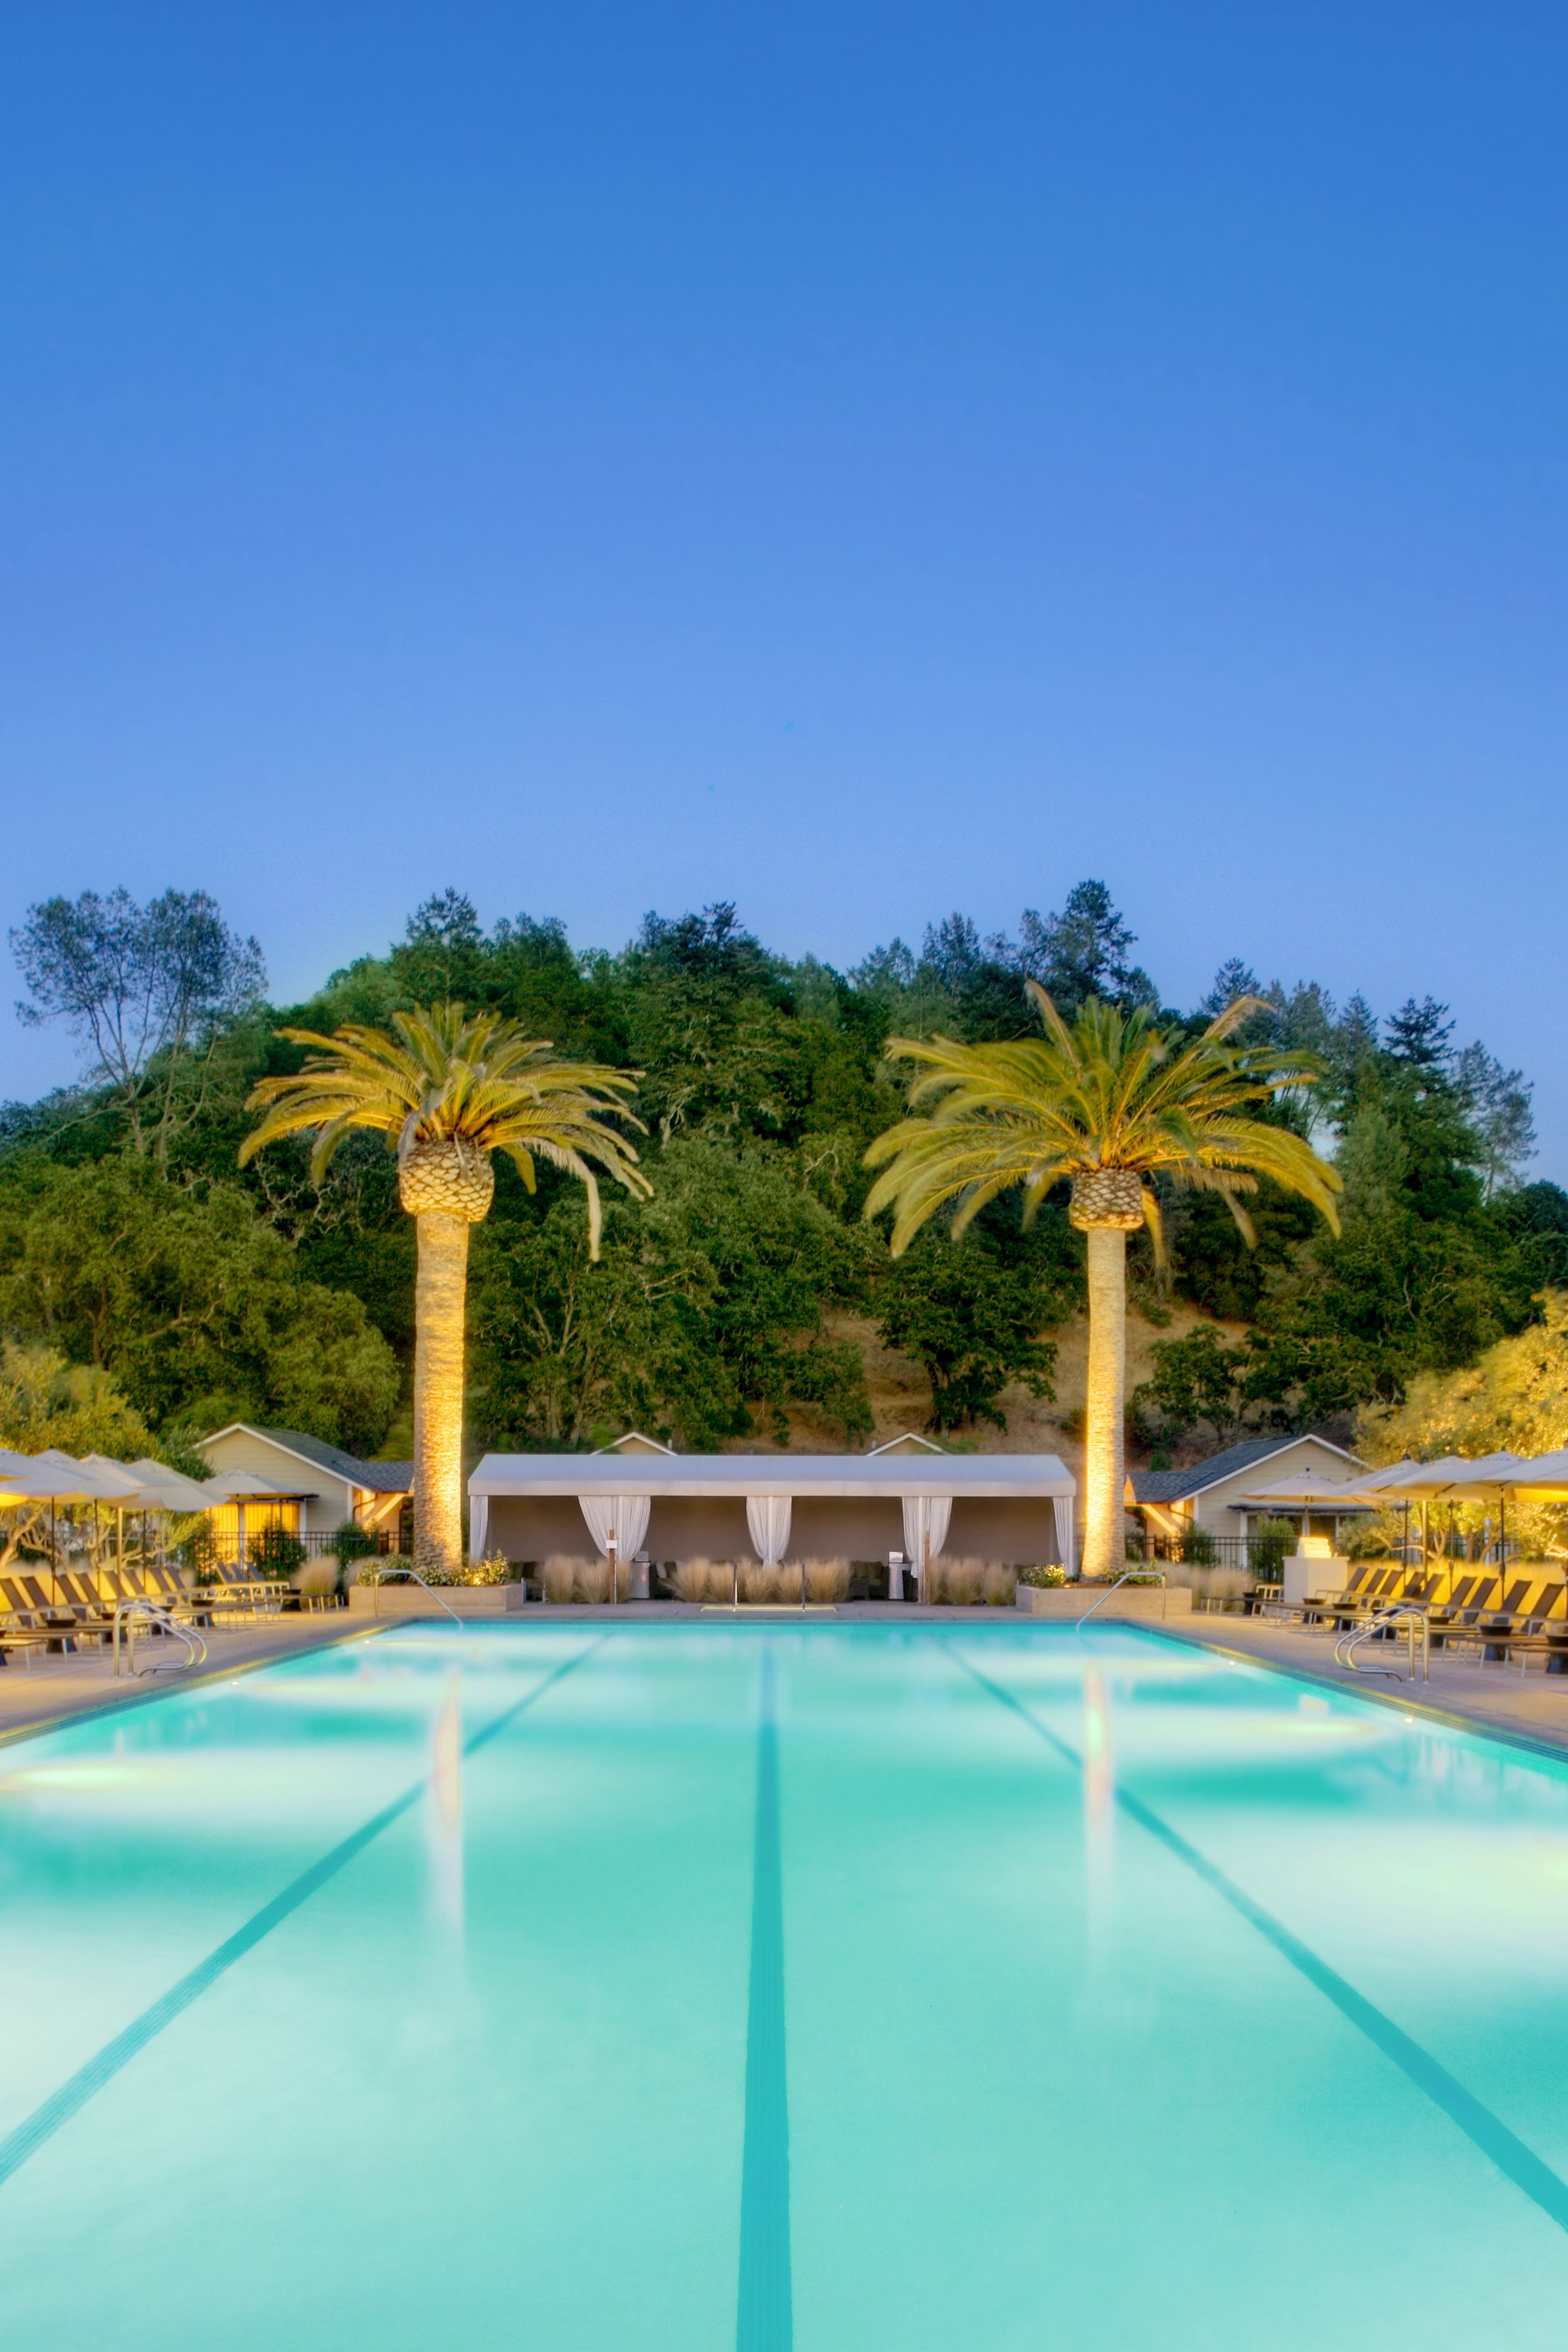 Solage Calistoga  Last minute hotel deals Great hotel